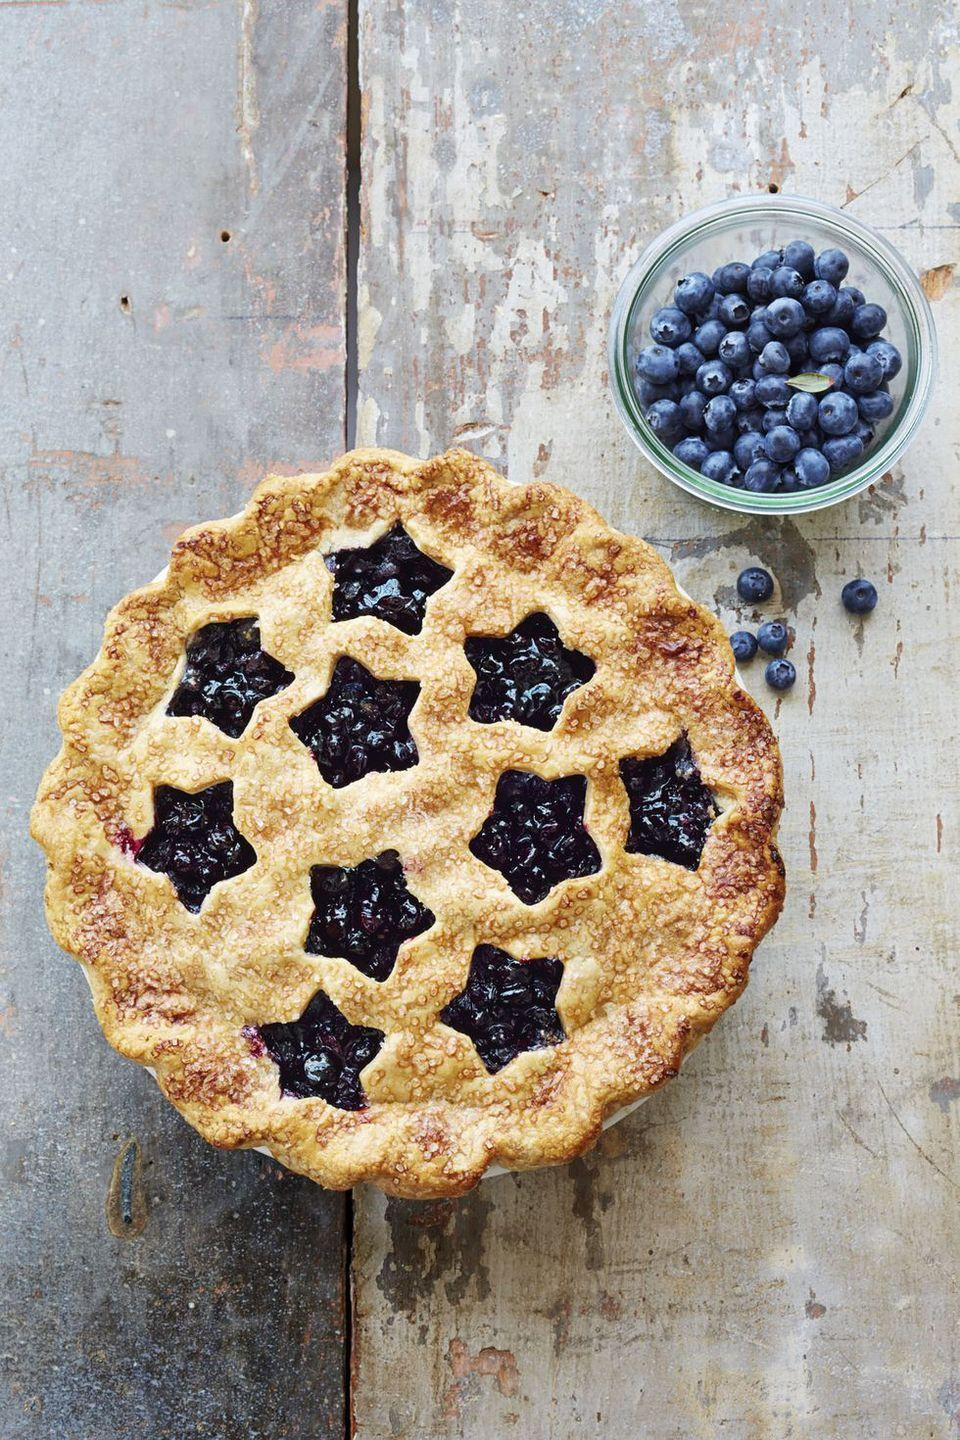 "<p>Turn a basic blueberry pie into a star-studded dessert — literally — with the help of patriotic cookie cutters.</p><p><em><a href=""https://www.goodhousekeeping.com/food-recipes/dessert/g1328/fruit-pies/?slide=2"" rel=""nofollow noopener"" target=""_blank"" data-ylk=""slk:Get the recipe for Cutaway Blueberry Pie »"" class=""link rapid-noclick-resp"">Get the recipe for Cutaway Blueberry Pie »</a></em></p>"